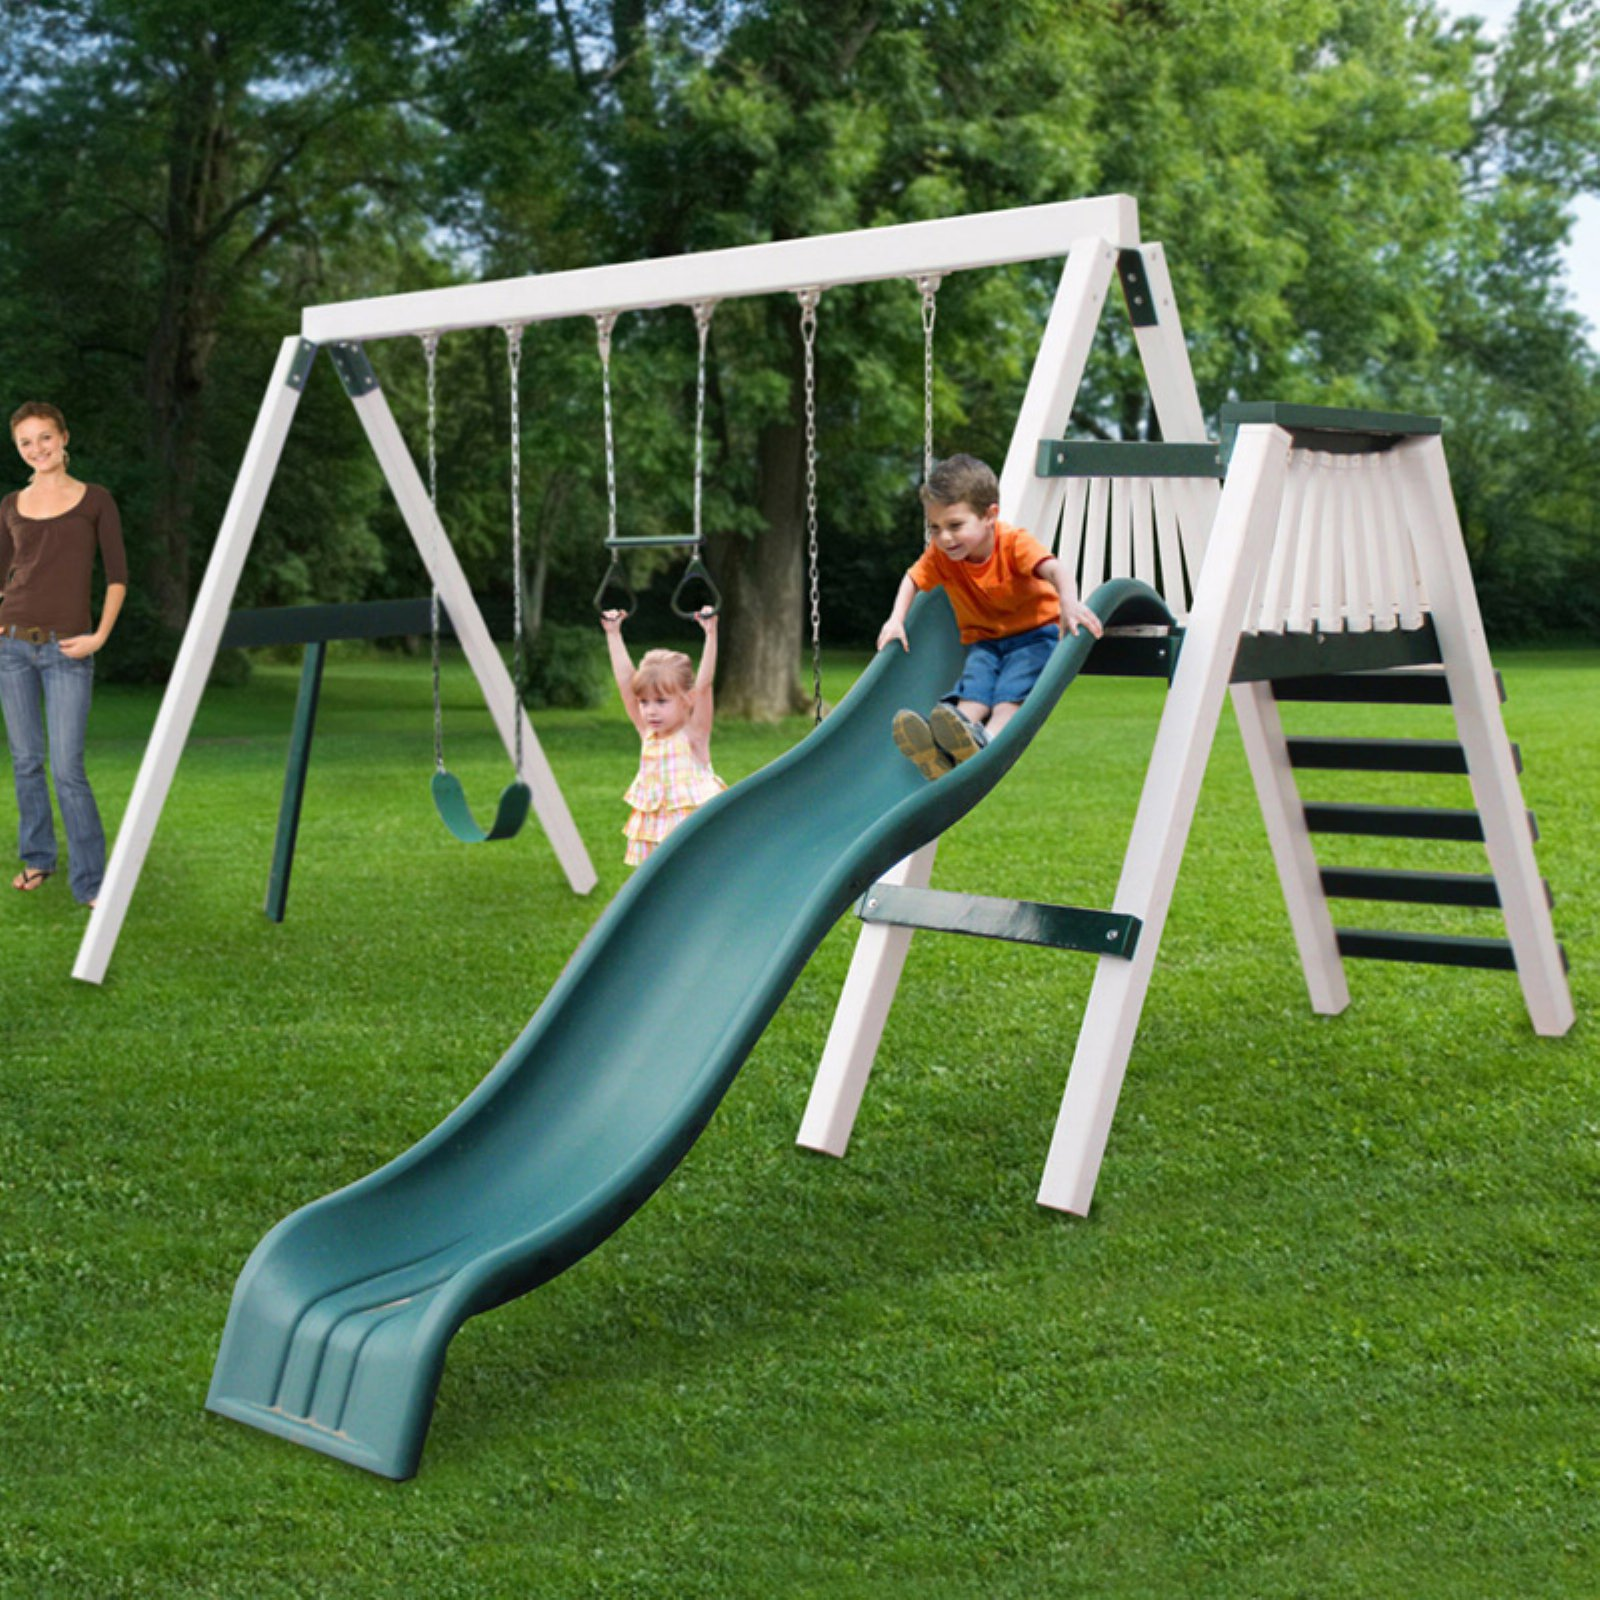 Congo Swing N Monkey 3 Station Play Set - White and Green